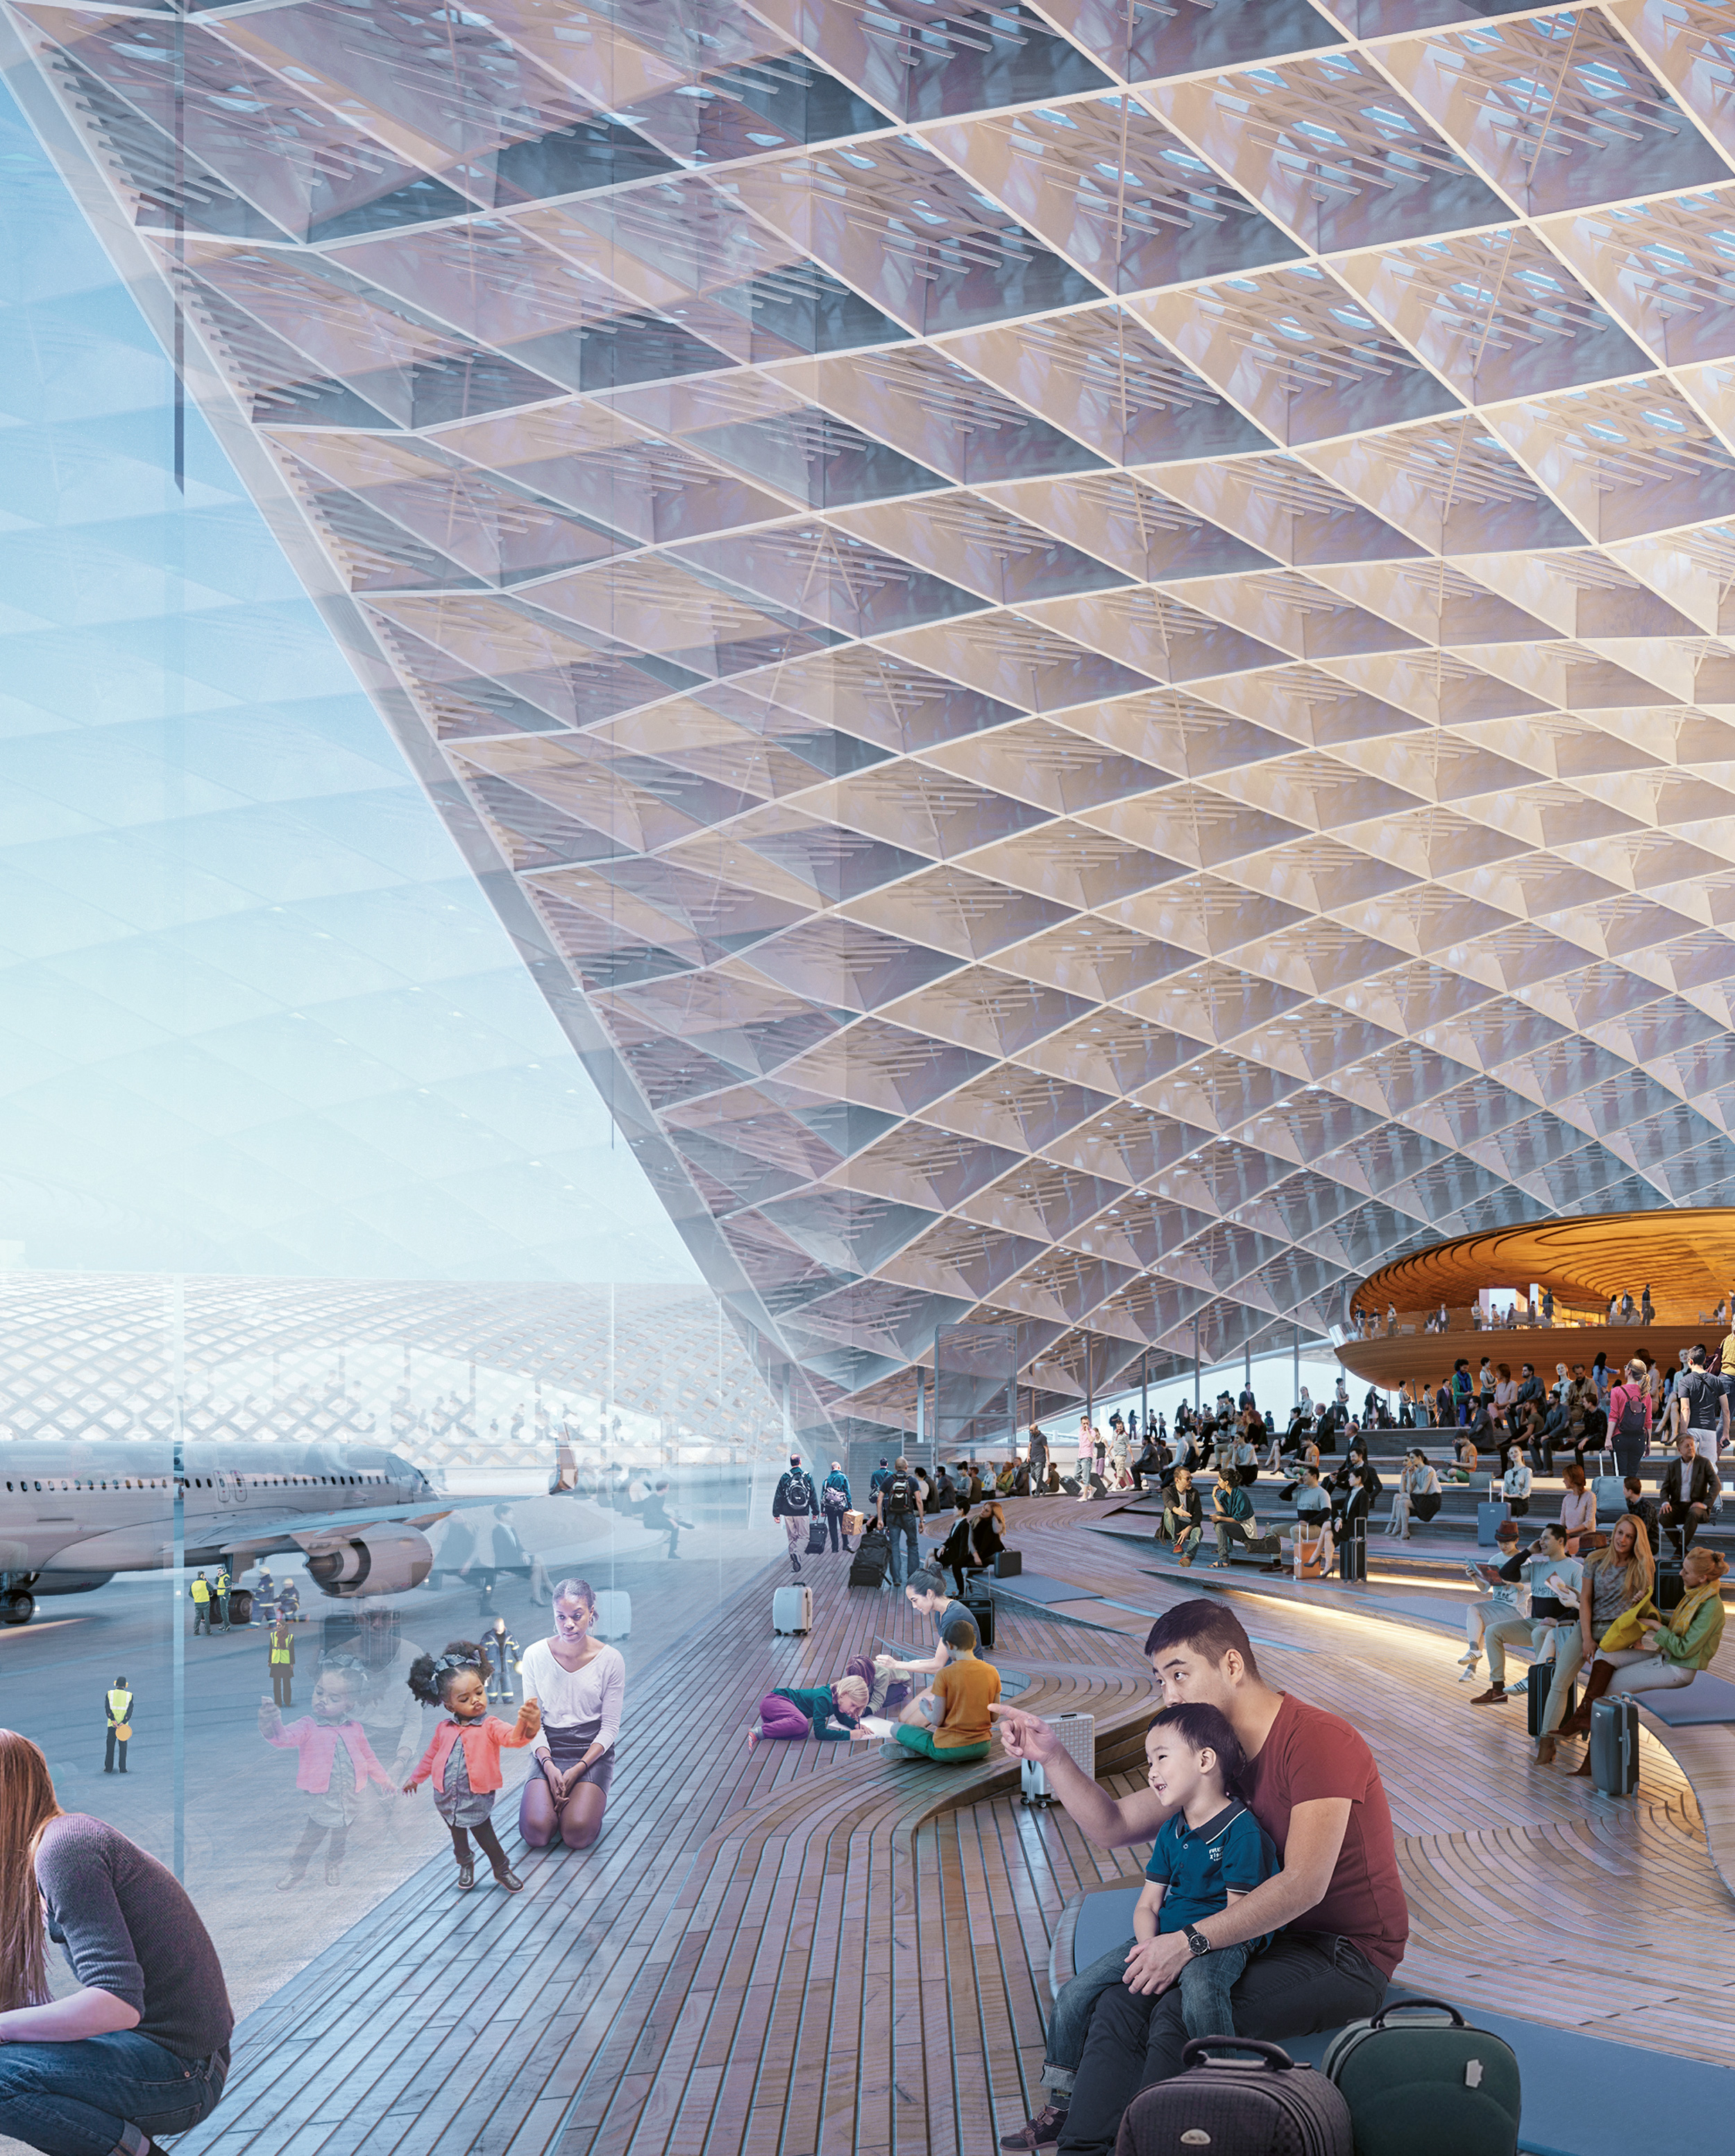 O'Hare International Airport Expansion, Foster + Partners, Epstein, Moreno